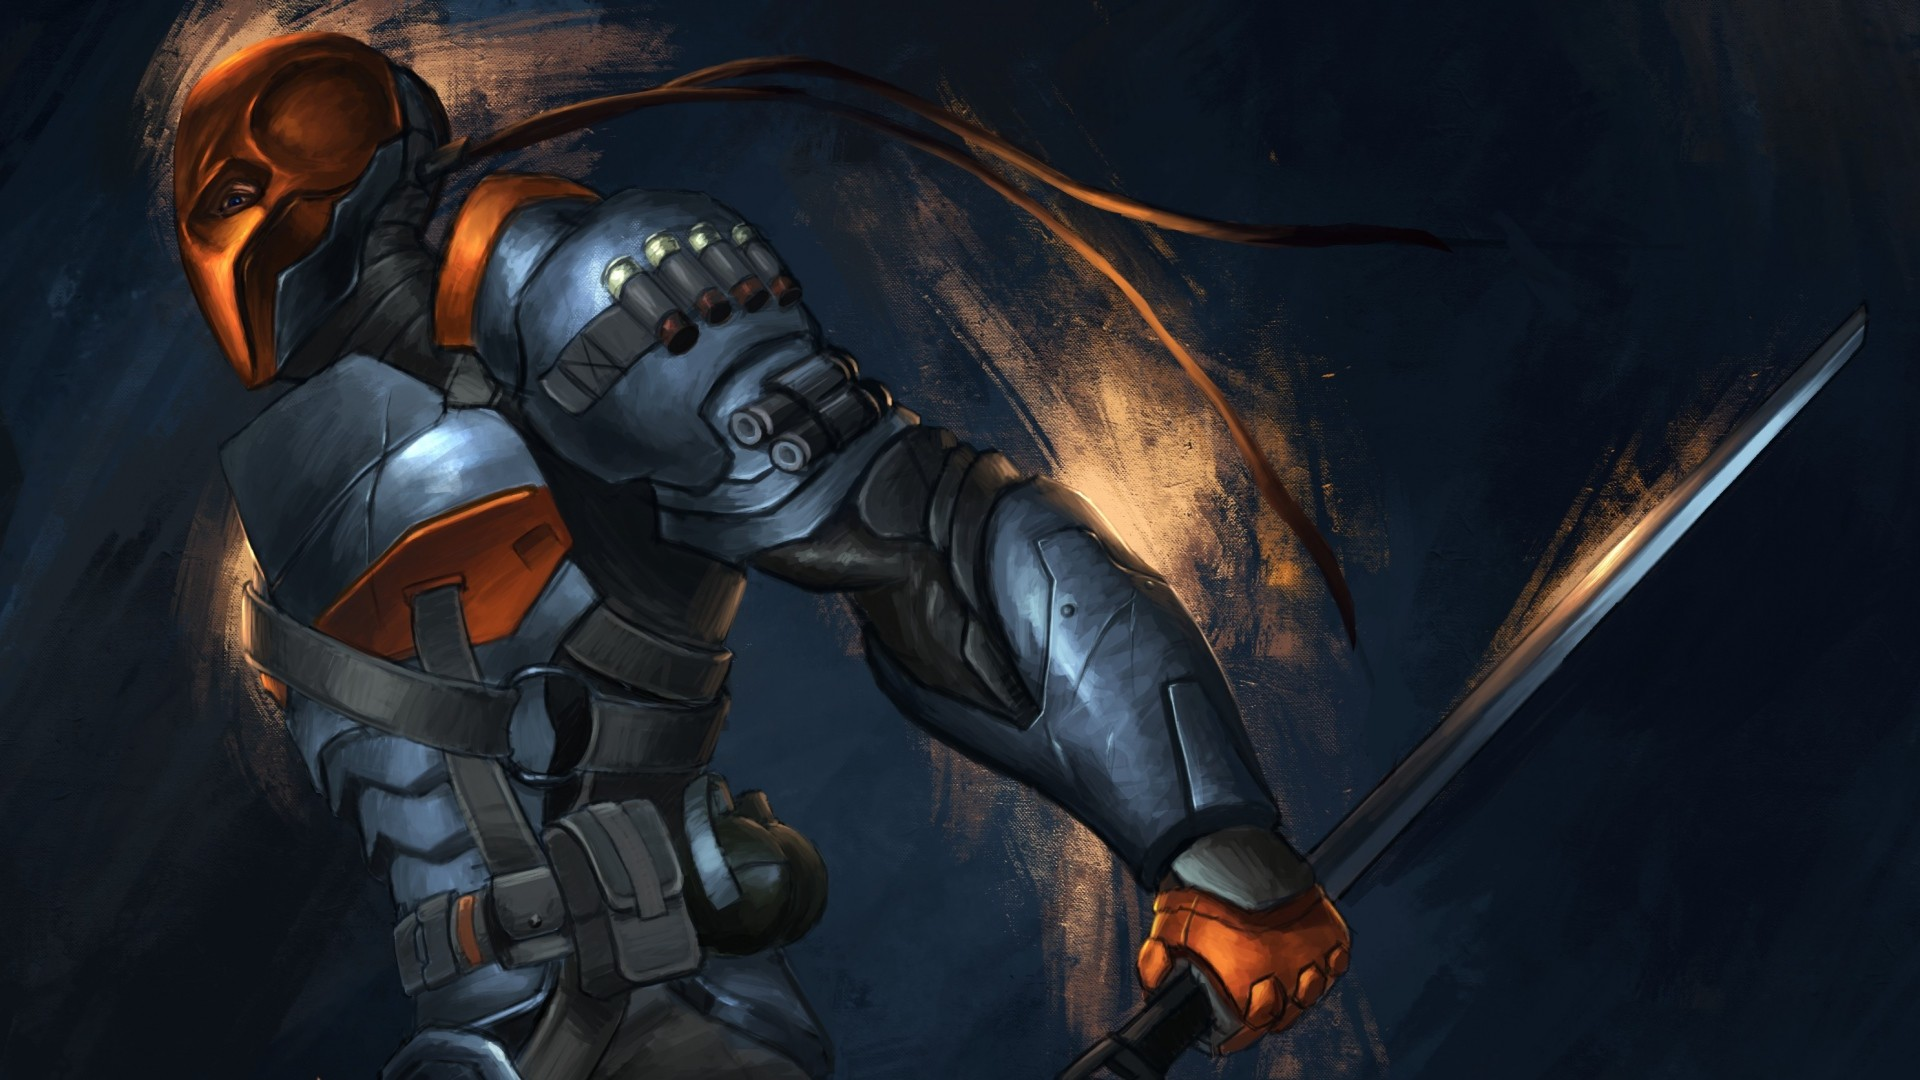 1920x1080  Wallpaper batman, arkham origins, deathstroke, sword, armor, art